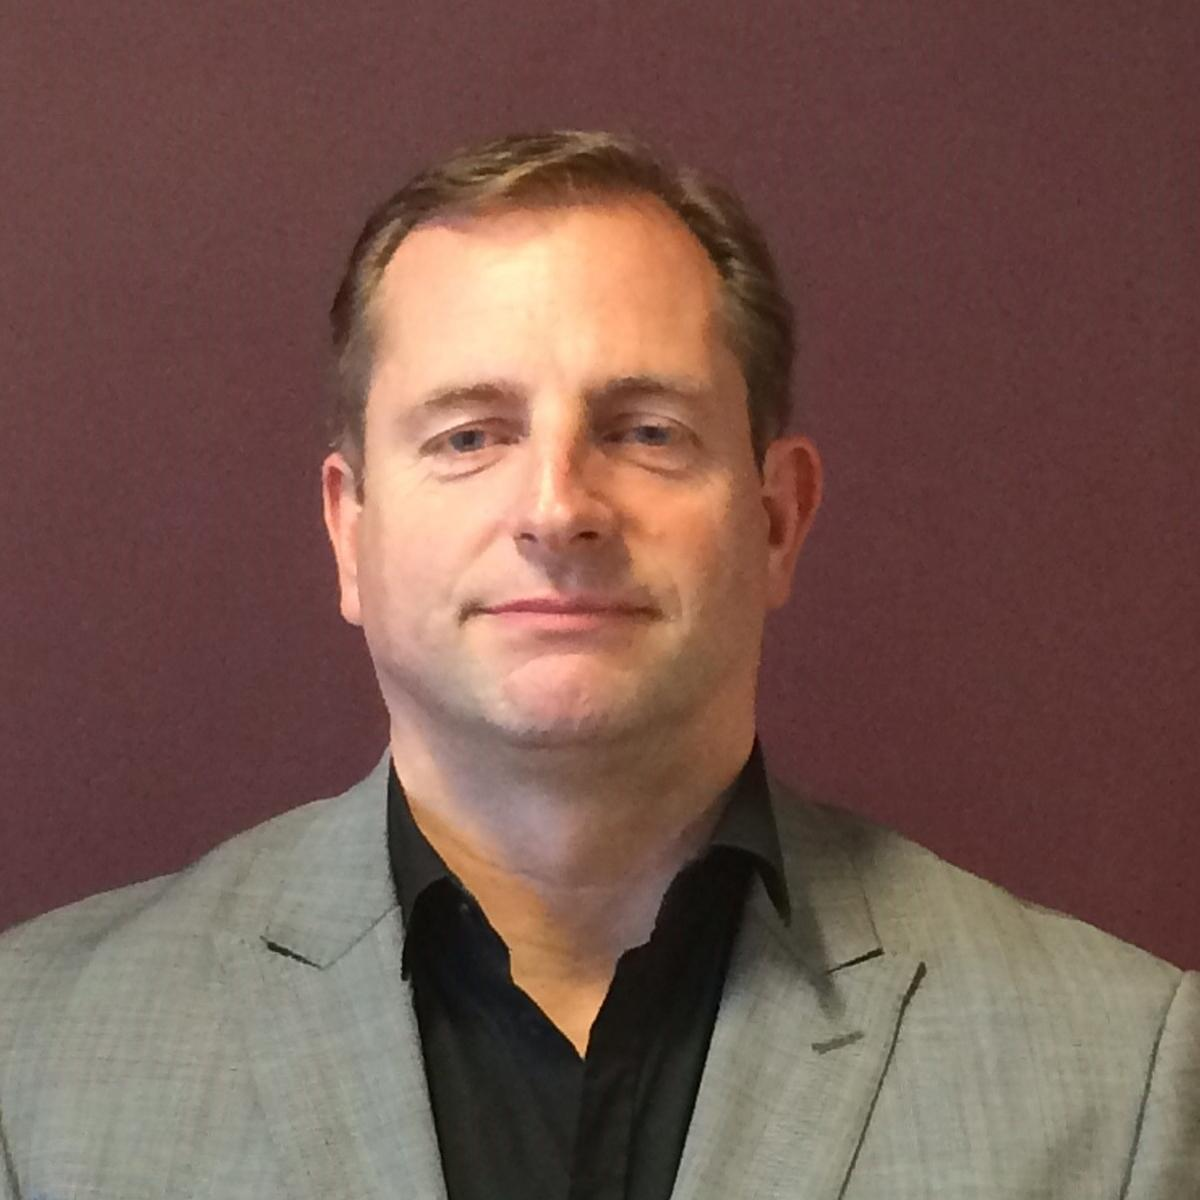 Chester has more than 20 years' experience working in the health and fitness industry